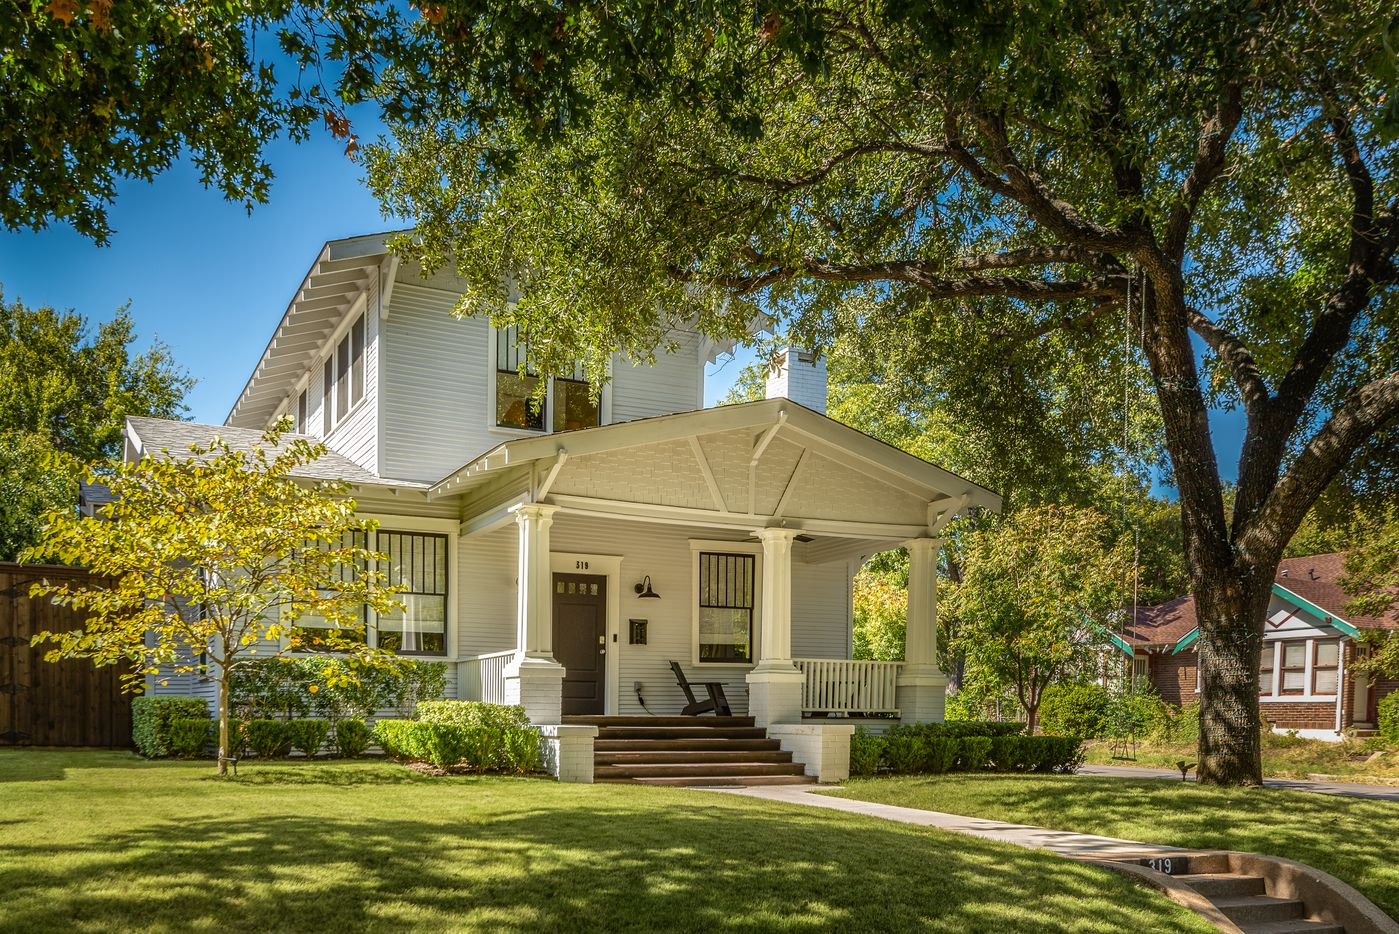 A look at the property at 319 North Edgefield Avenue in Dallas, Texas.